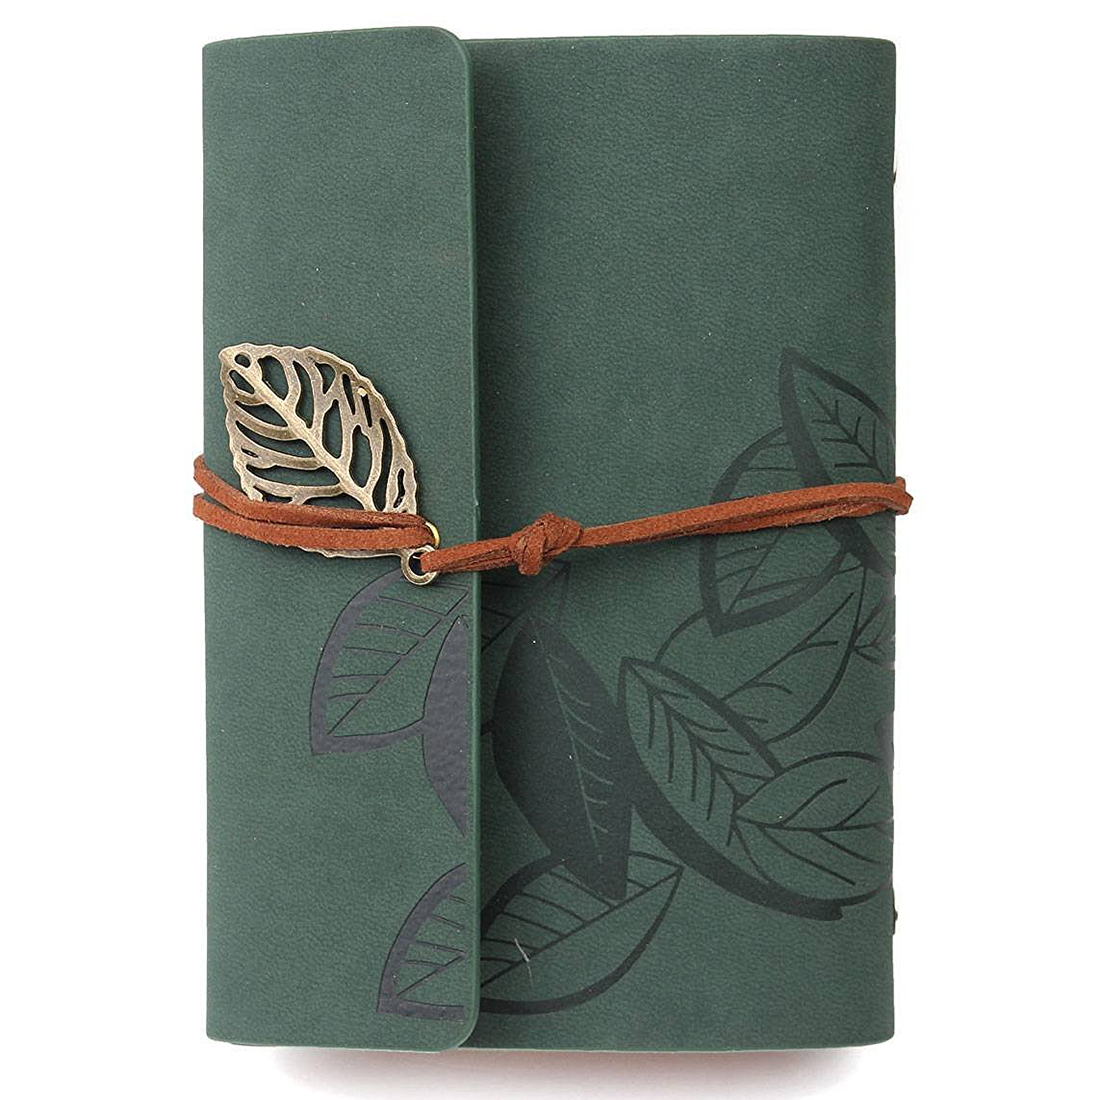 Diary notebook vintage style leather greenDiary notebook vintage style leather green